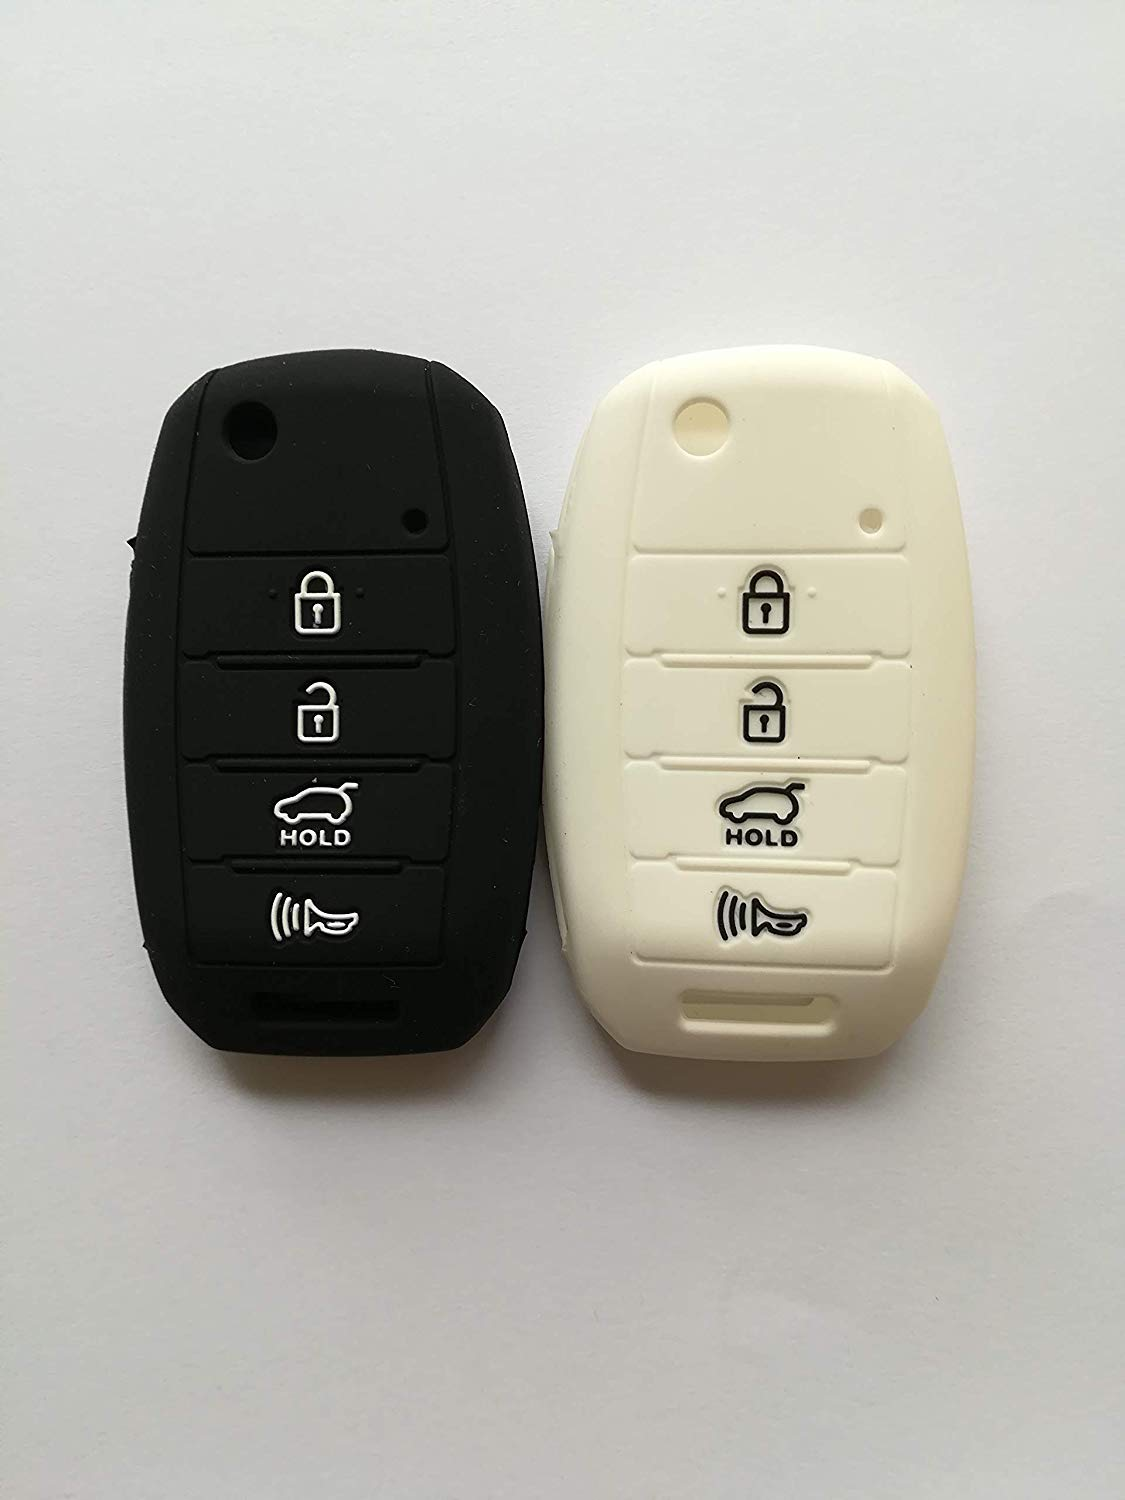 Qty(2) Key Cover Sleeve for 2013 2016 2014 2015 KIA Sorento Carens Forte Rio Soul Optima Sportage Remote Key Holder Protector Fob Skin Key Cover Keyless Gift TQ8-RKE-3F05